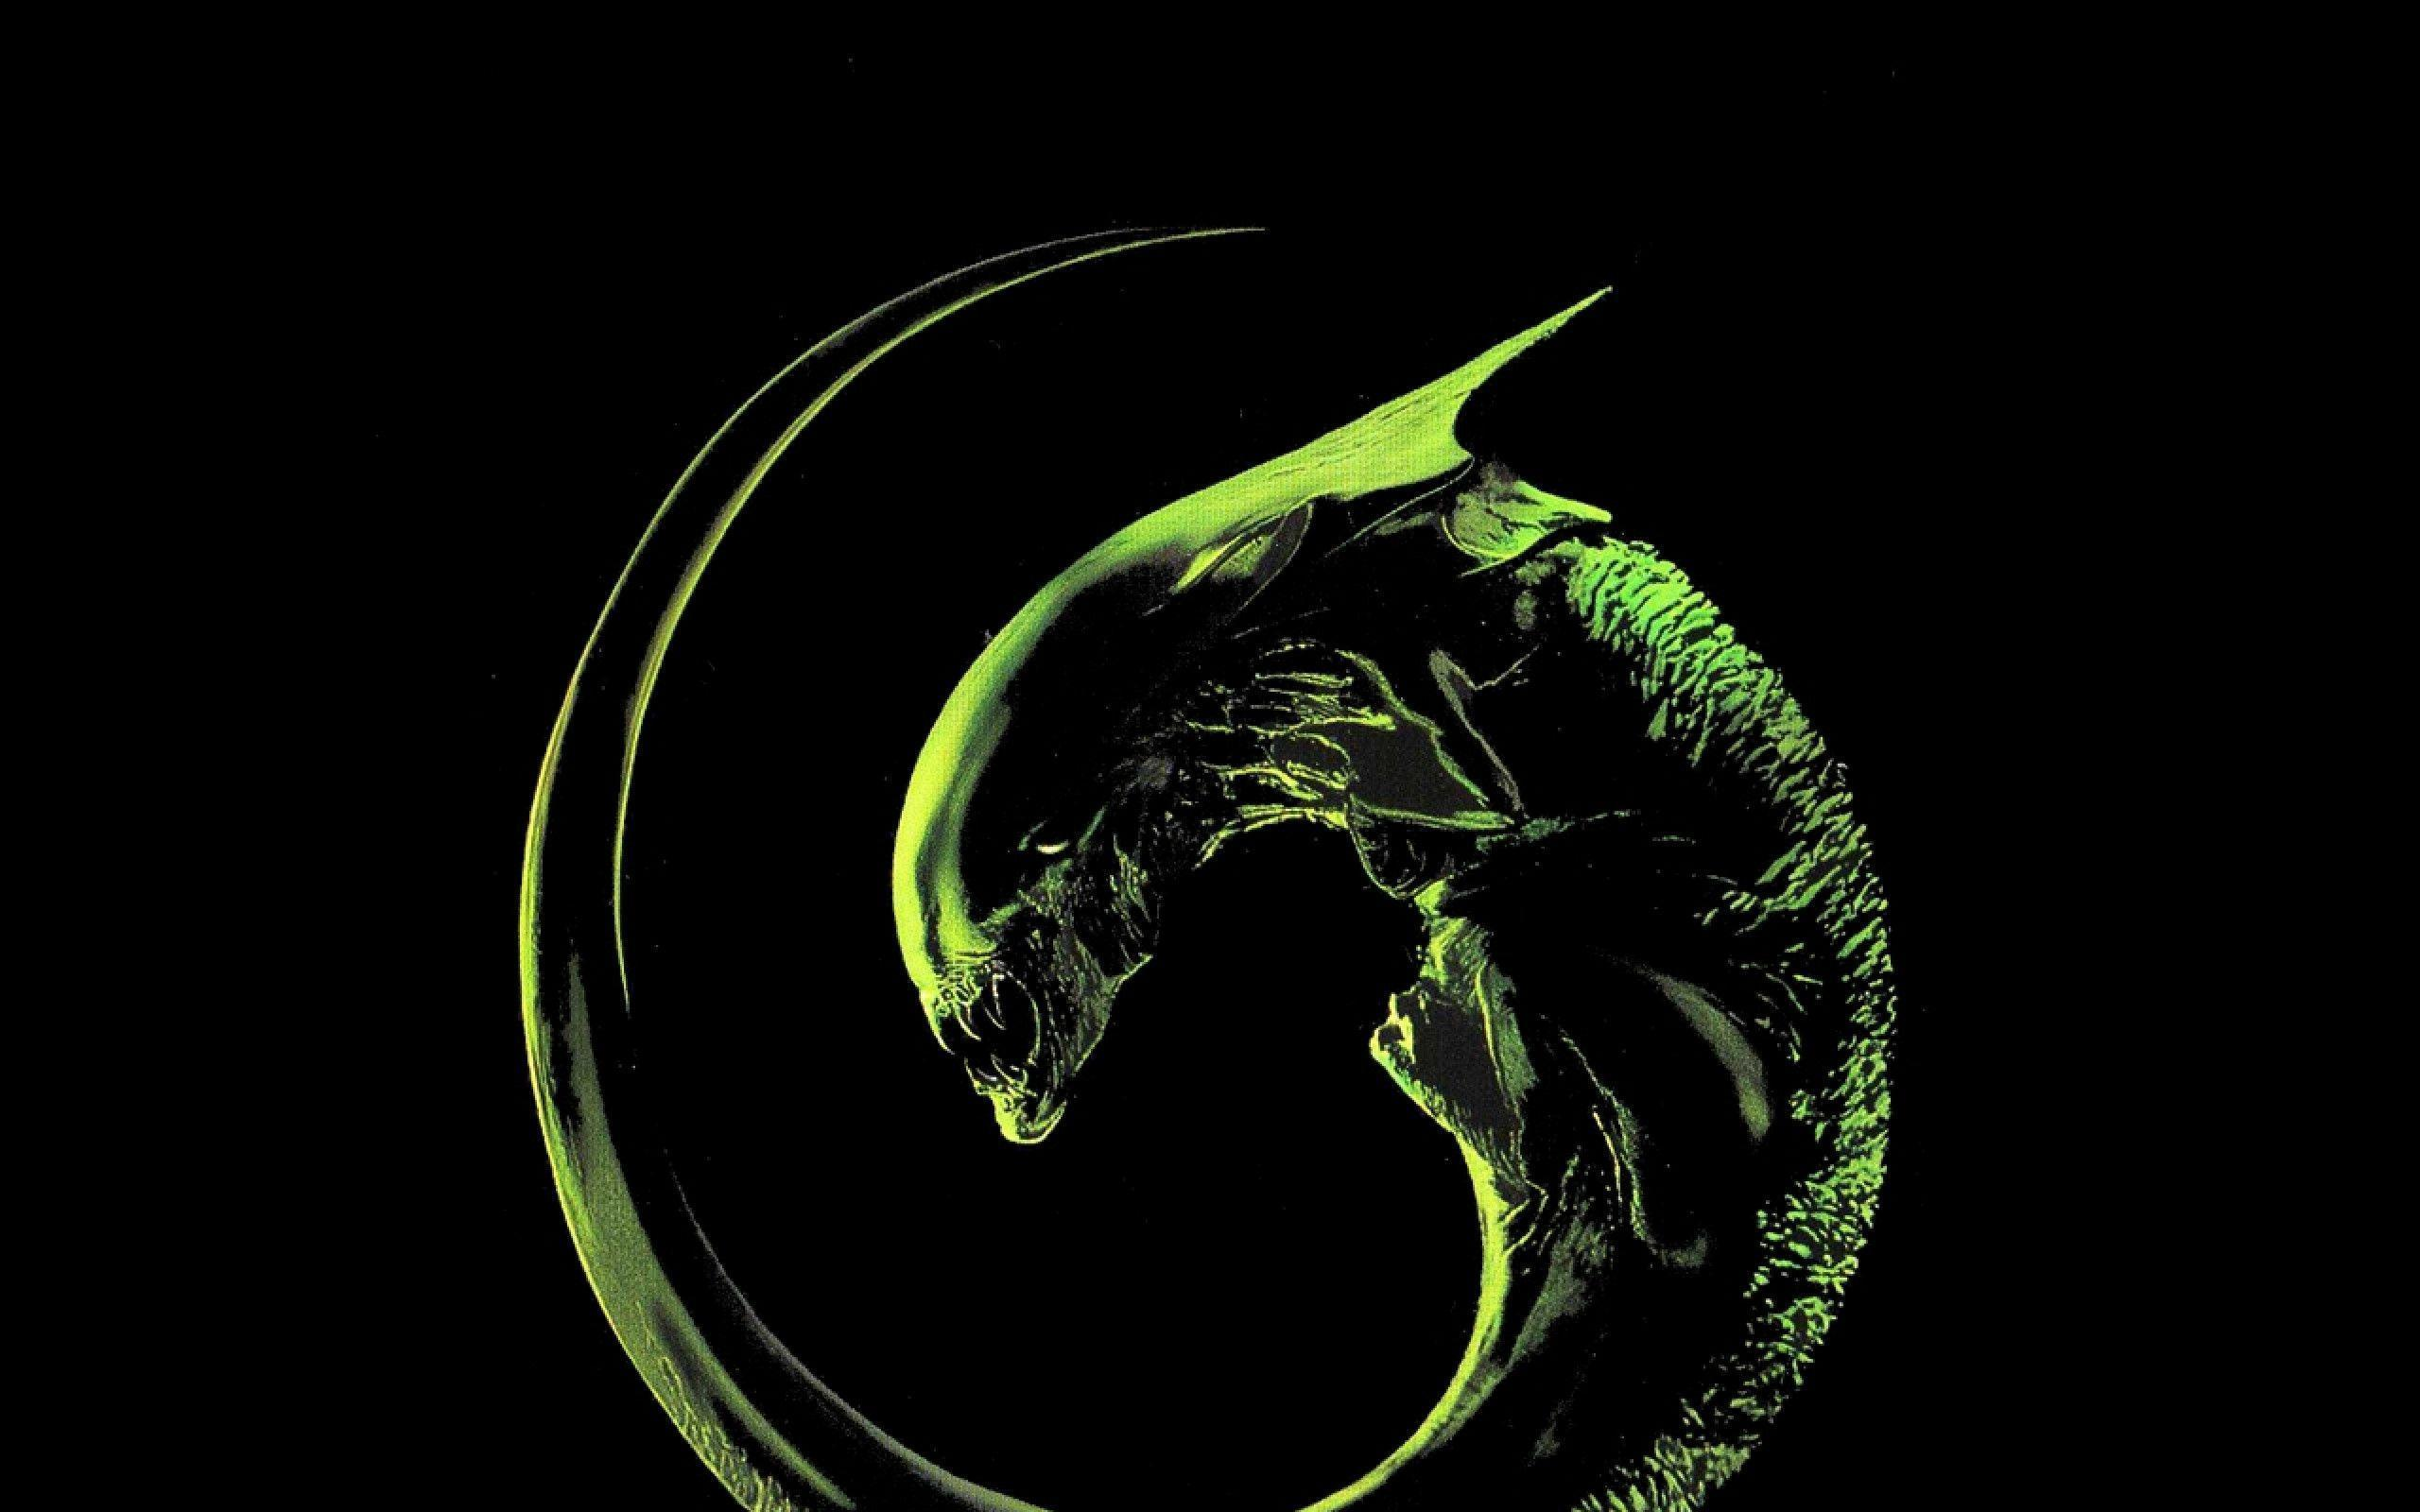 Alien Movie Wallpapers 2560x1600